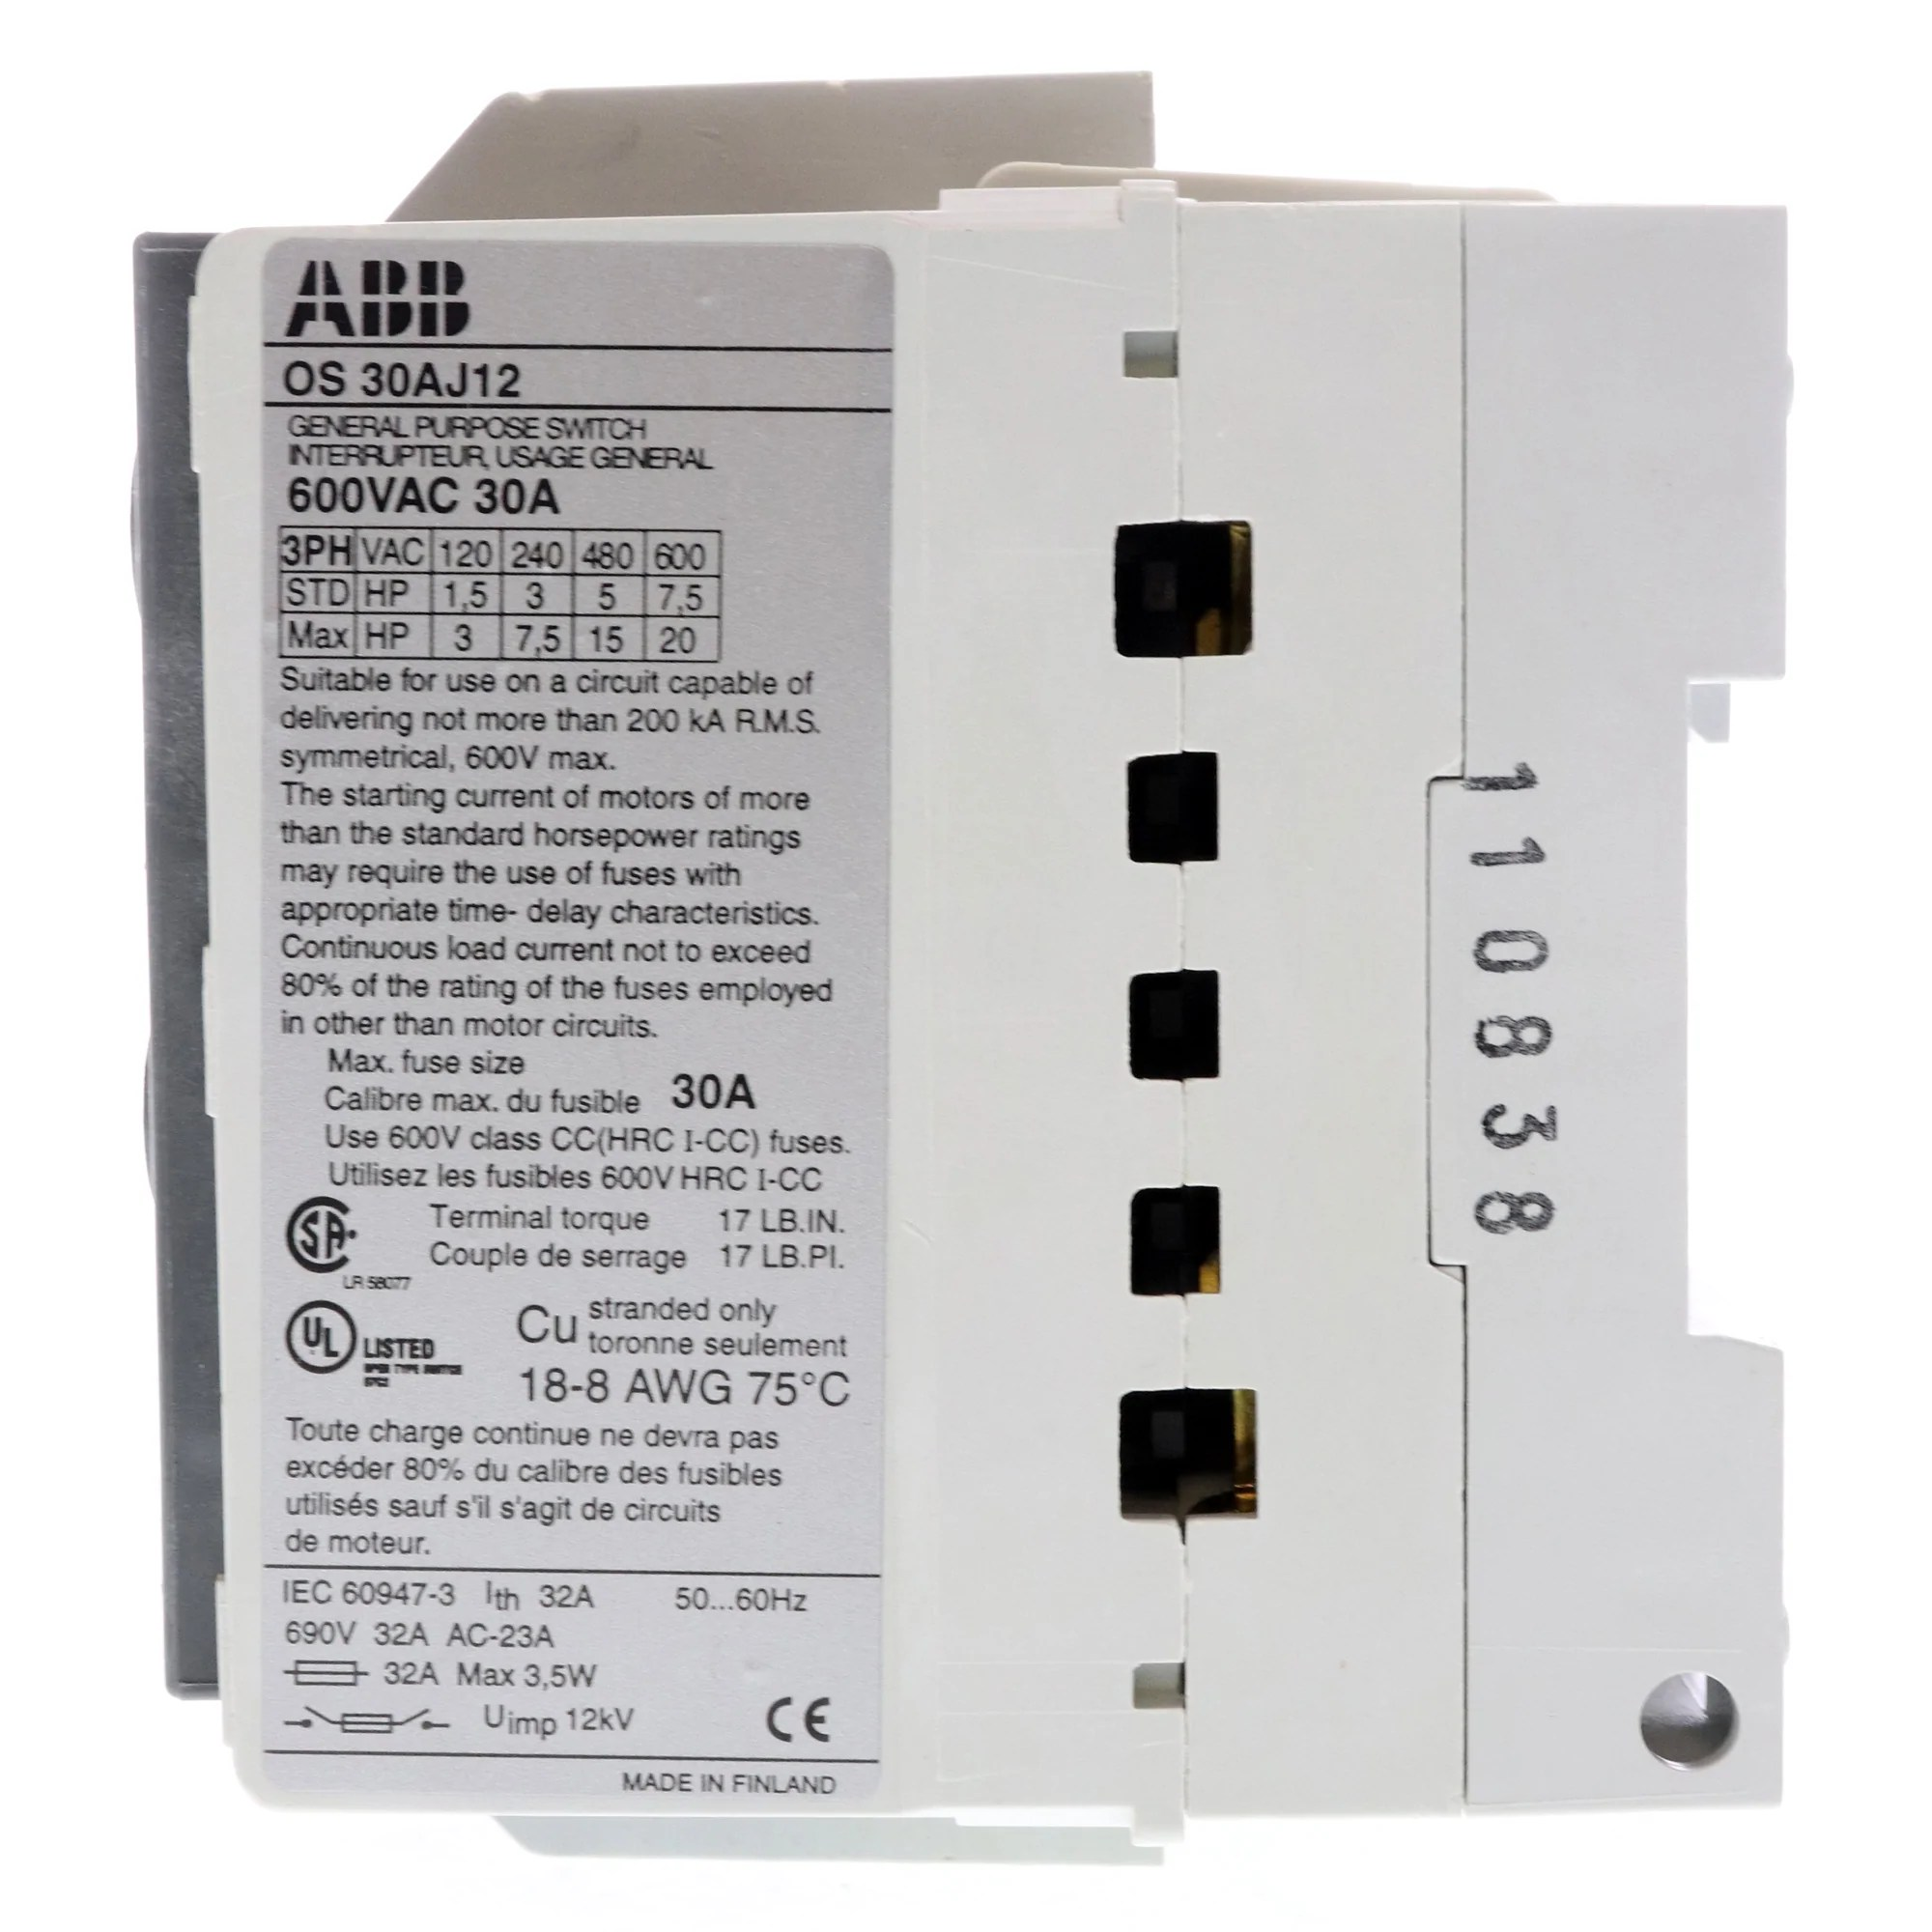 medium resolution of abb os 30aj12 fused open disconnect switch 30a 600v class j